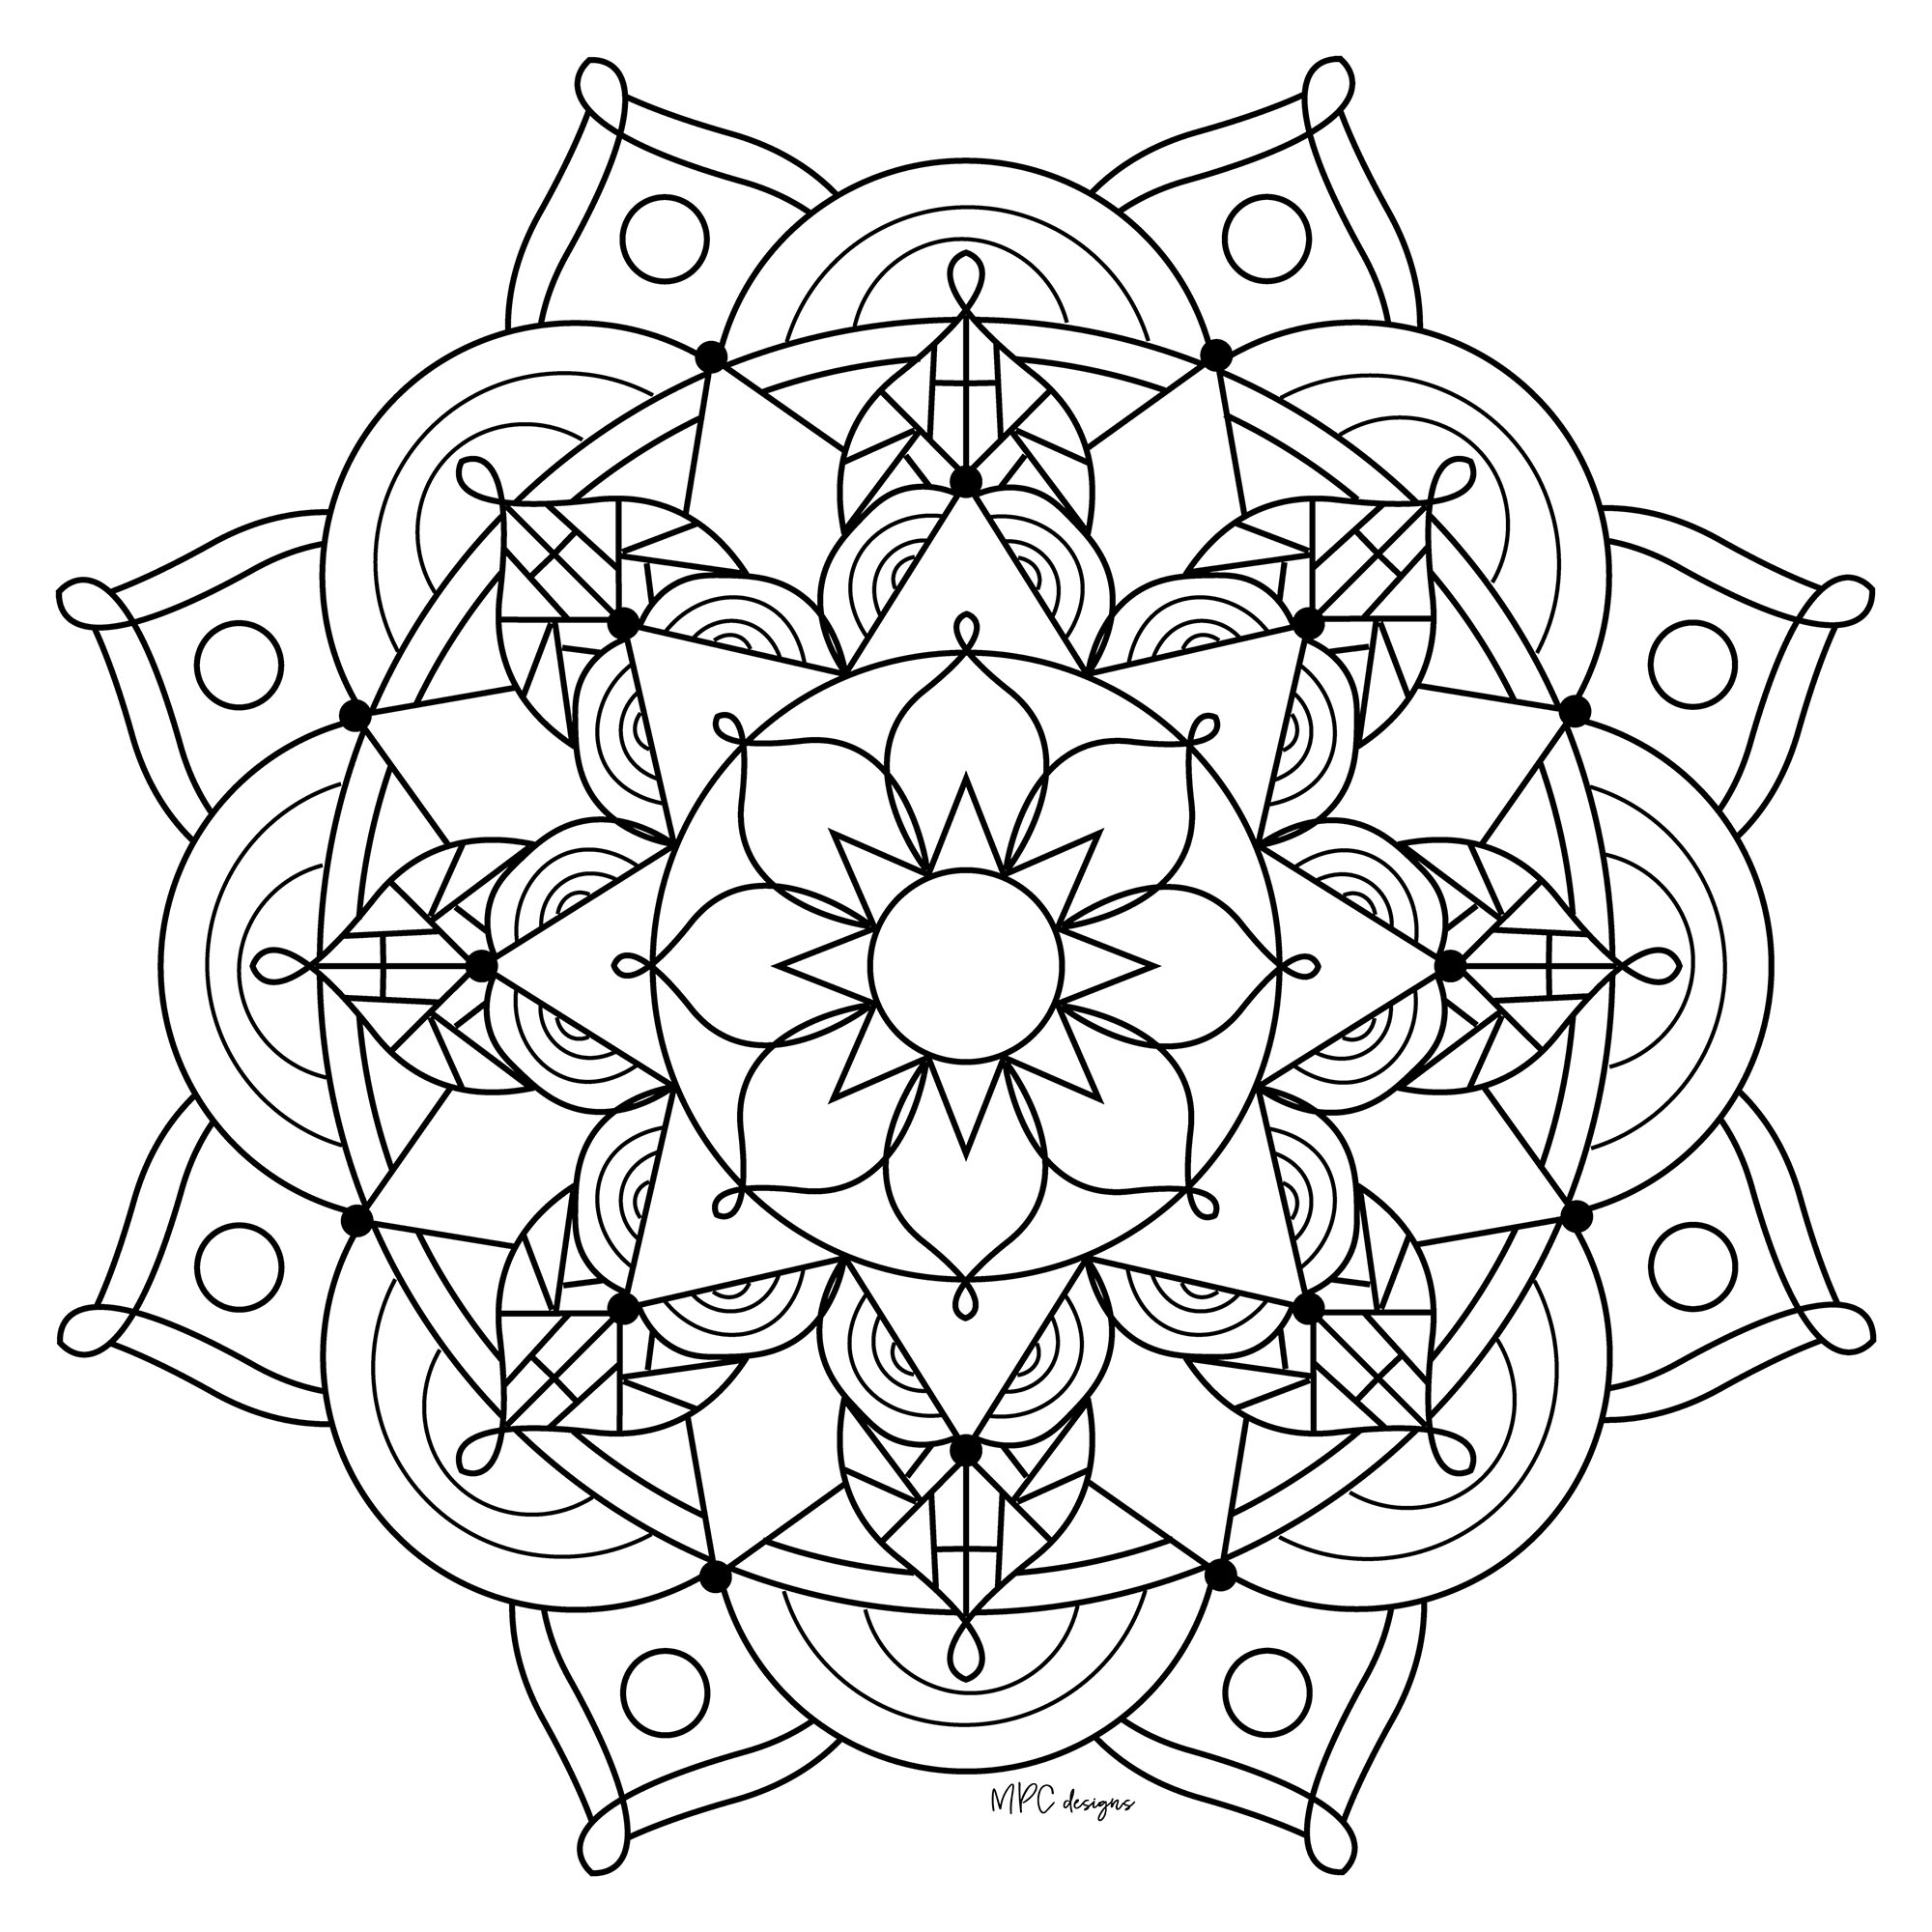 designs to color free ant stress simple mandala zen anti stress mandalas free designs to color